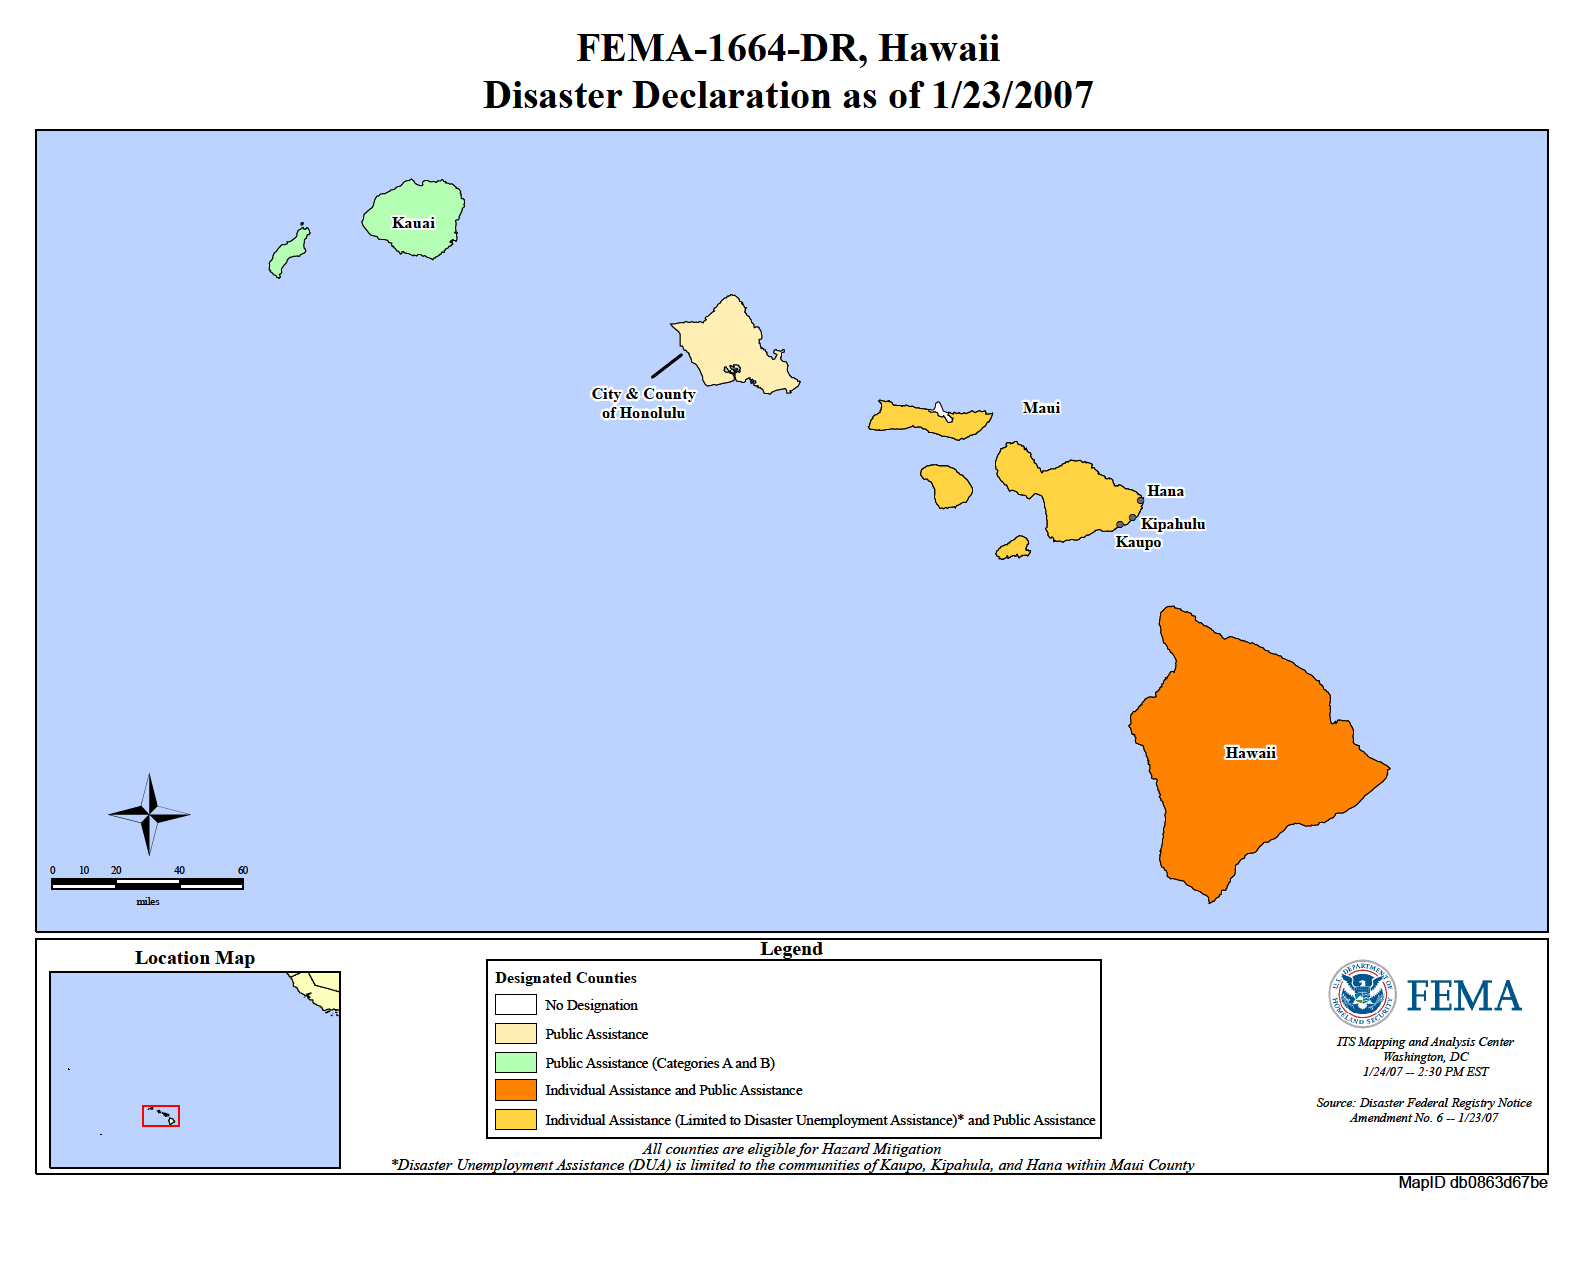 Hawaii Earthquake (DR 1664) | FEMA.gov